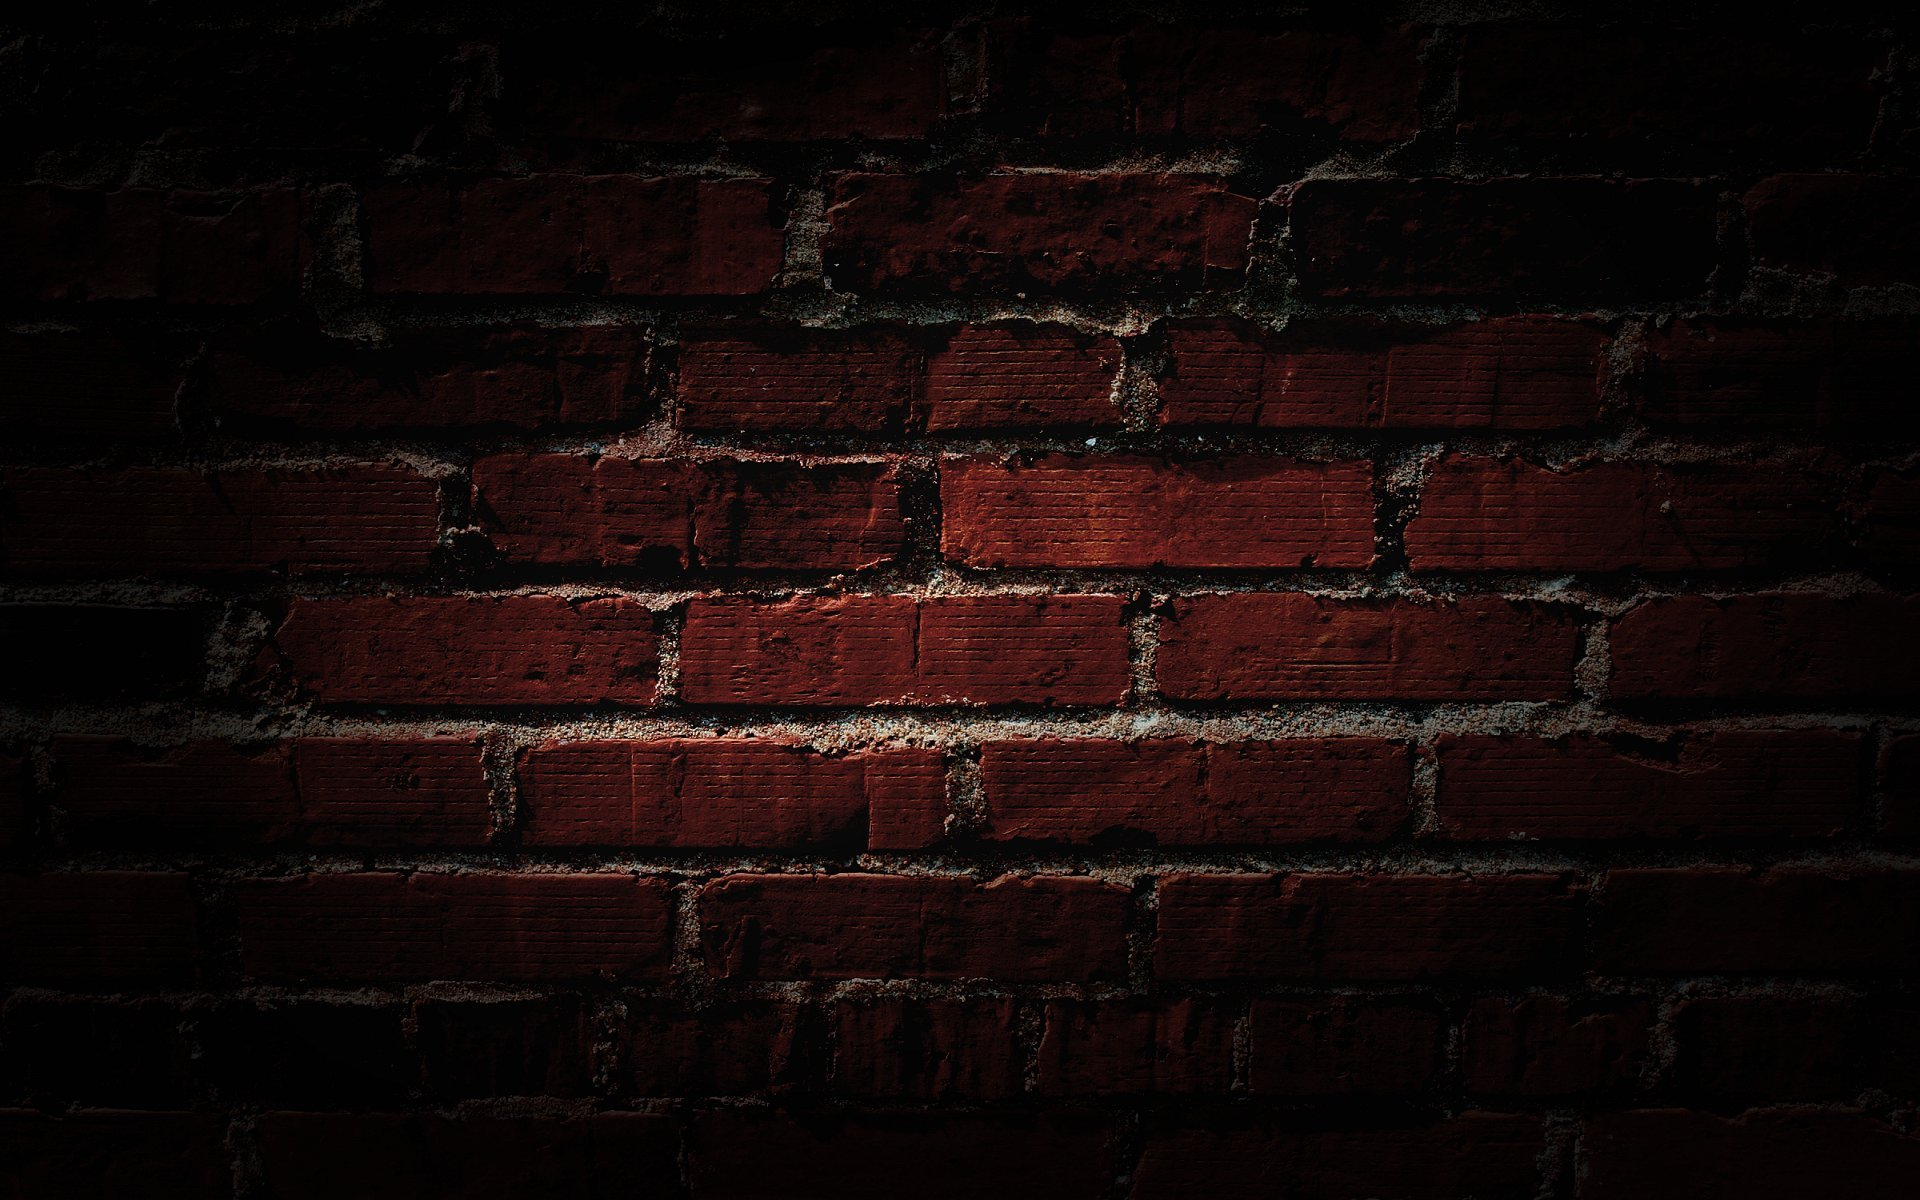 Brick Wallpaper · Brick Wallpaper · Brick Wallpaper ...